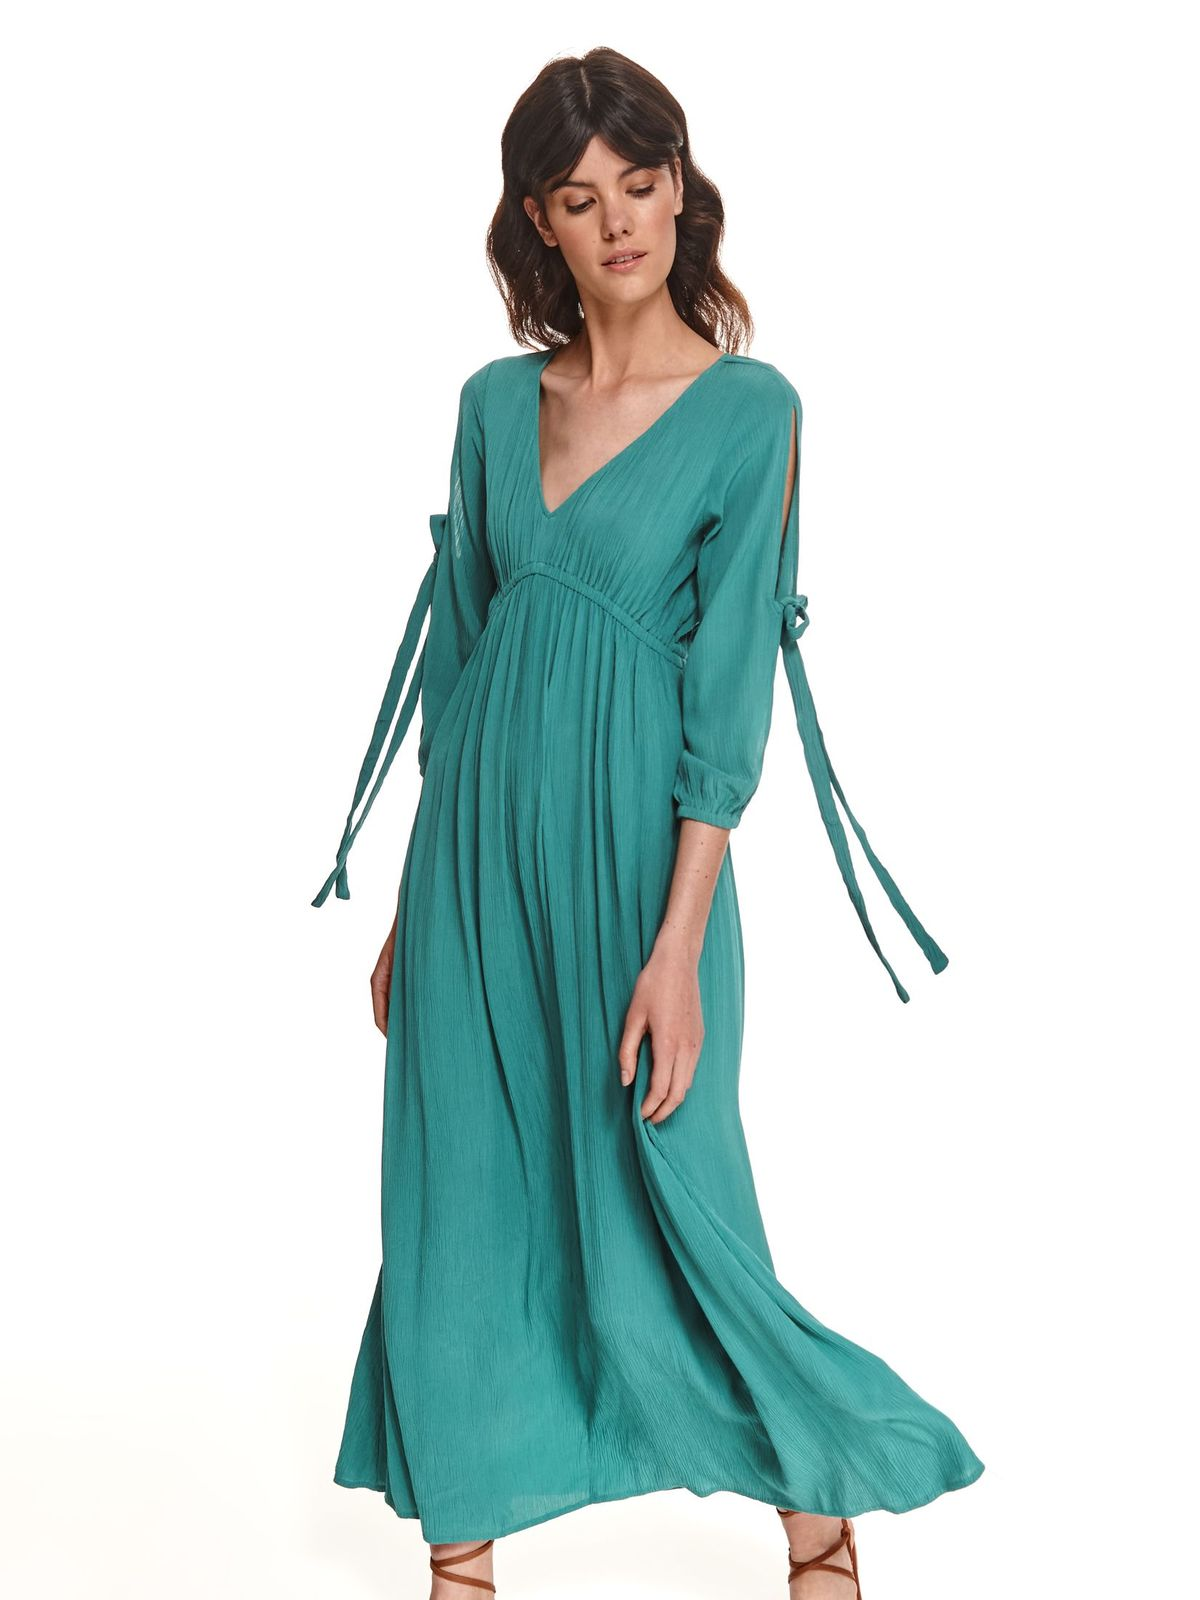 Turquoise dress with v-neckline long airy fabric